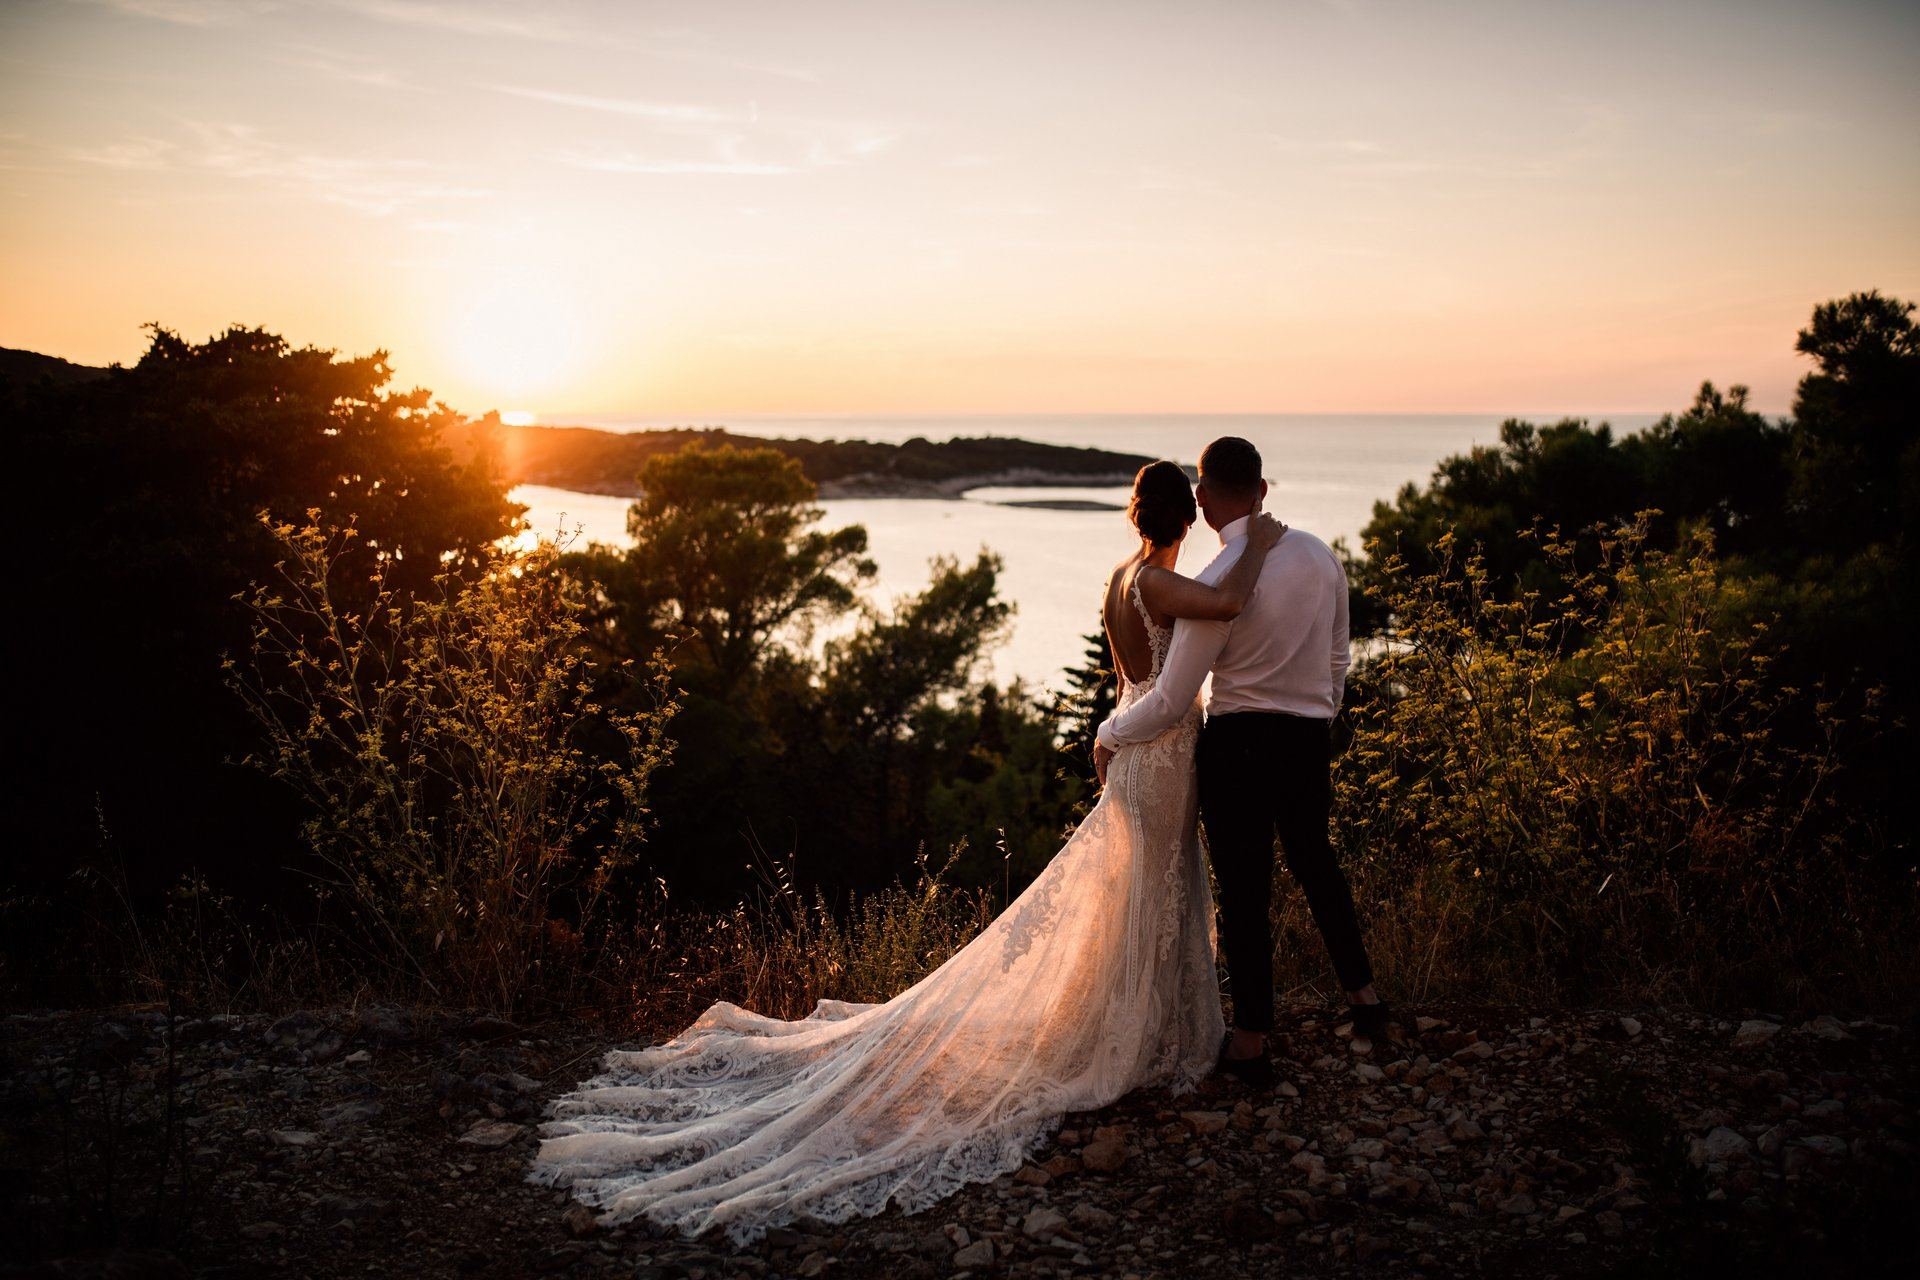 Wedding photographer | homepage | Sam&Jake Vis